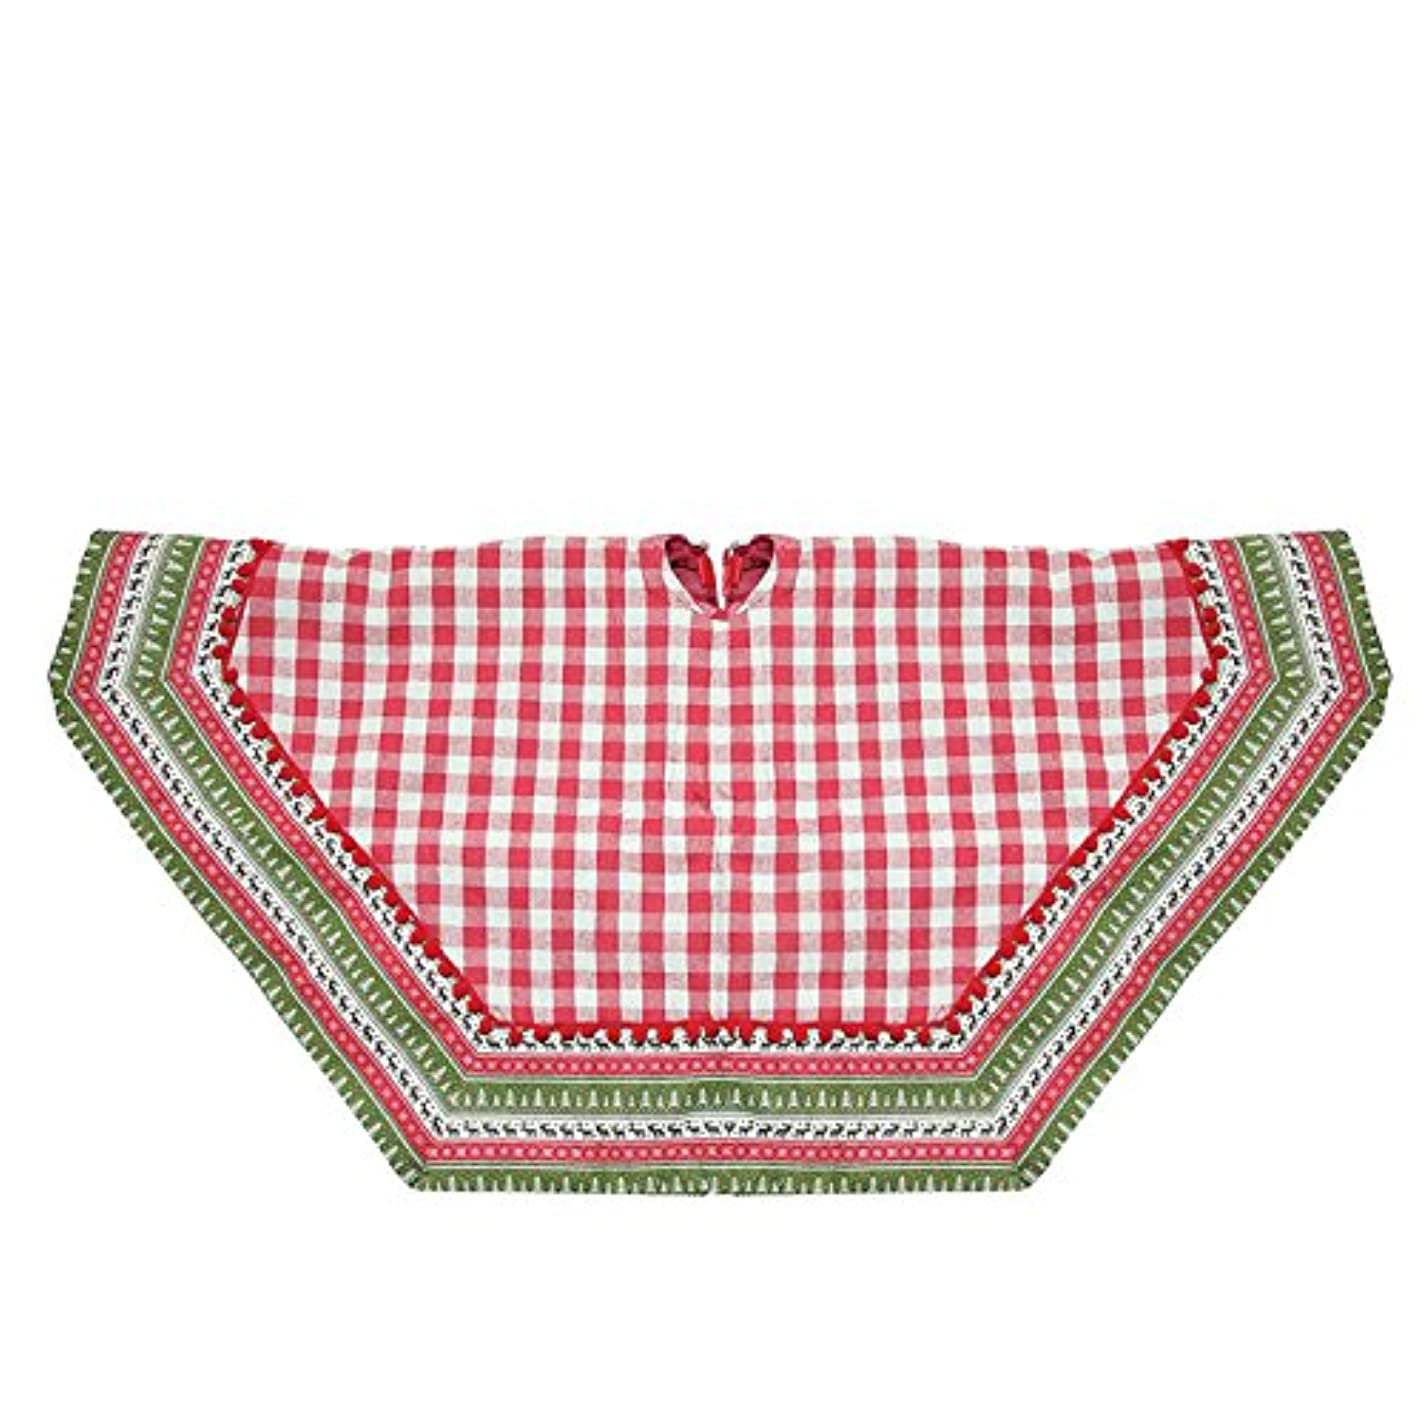 "Northlight 50"" 7-Sided Woodland Red Plaid Christmas Tree Skirt with Pom Trim and Lodge Border"